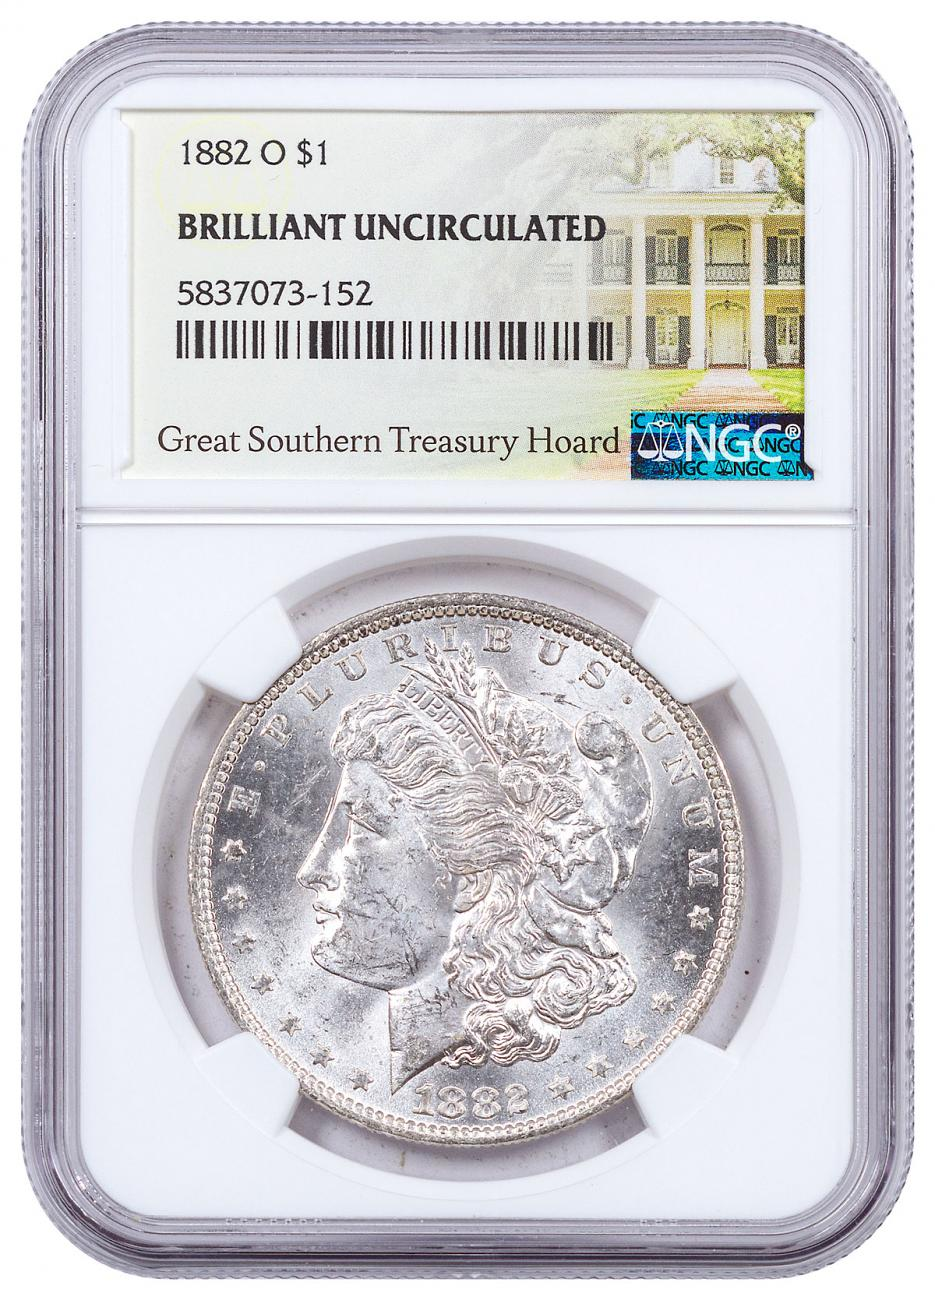 1882-O Morgan Silver Dollar NGC BU Great Southern Hoard Treasury Hoard Label